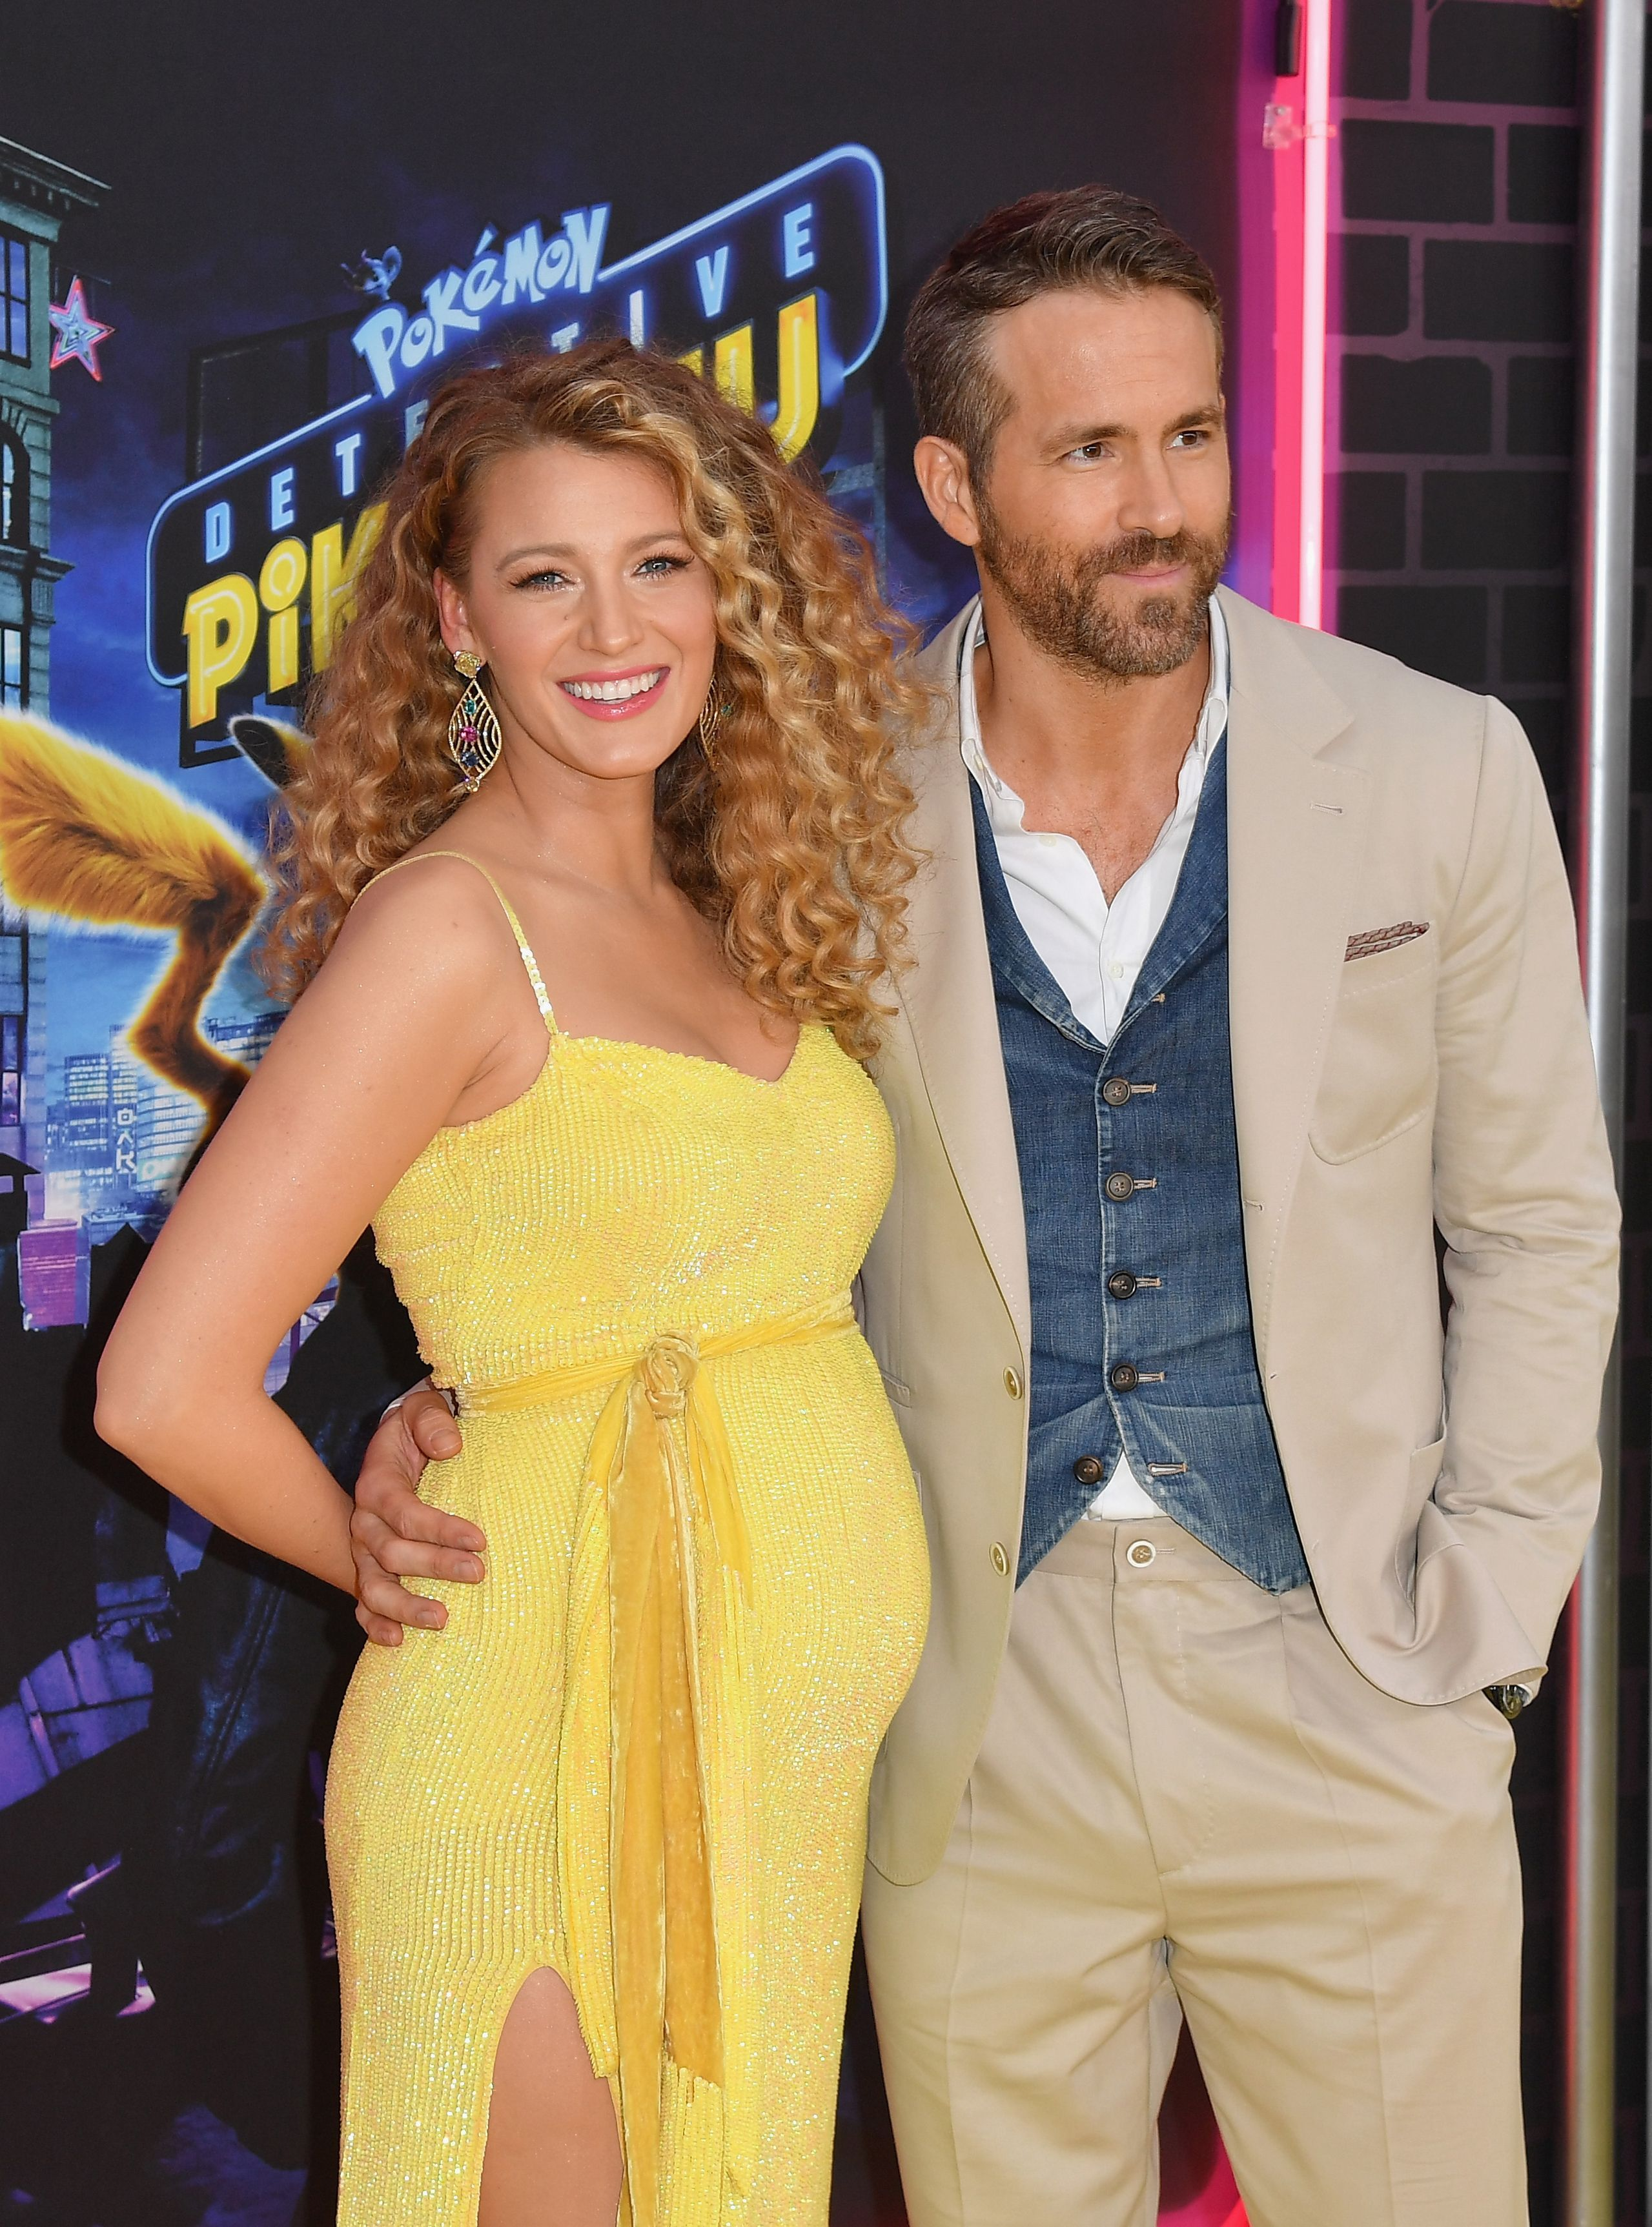 Ryan Reynolds Reveals He and Blake Lively Love to Binge Watch The Great British Bake Off